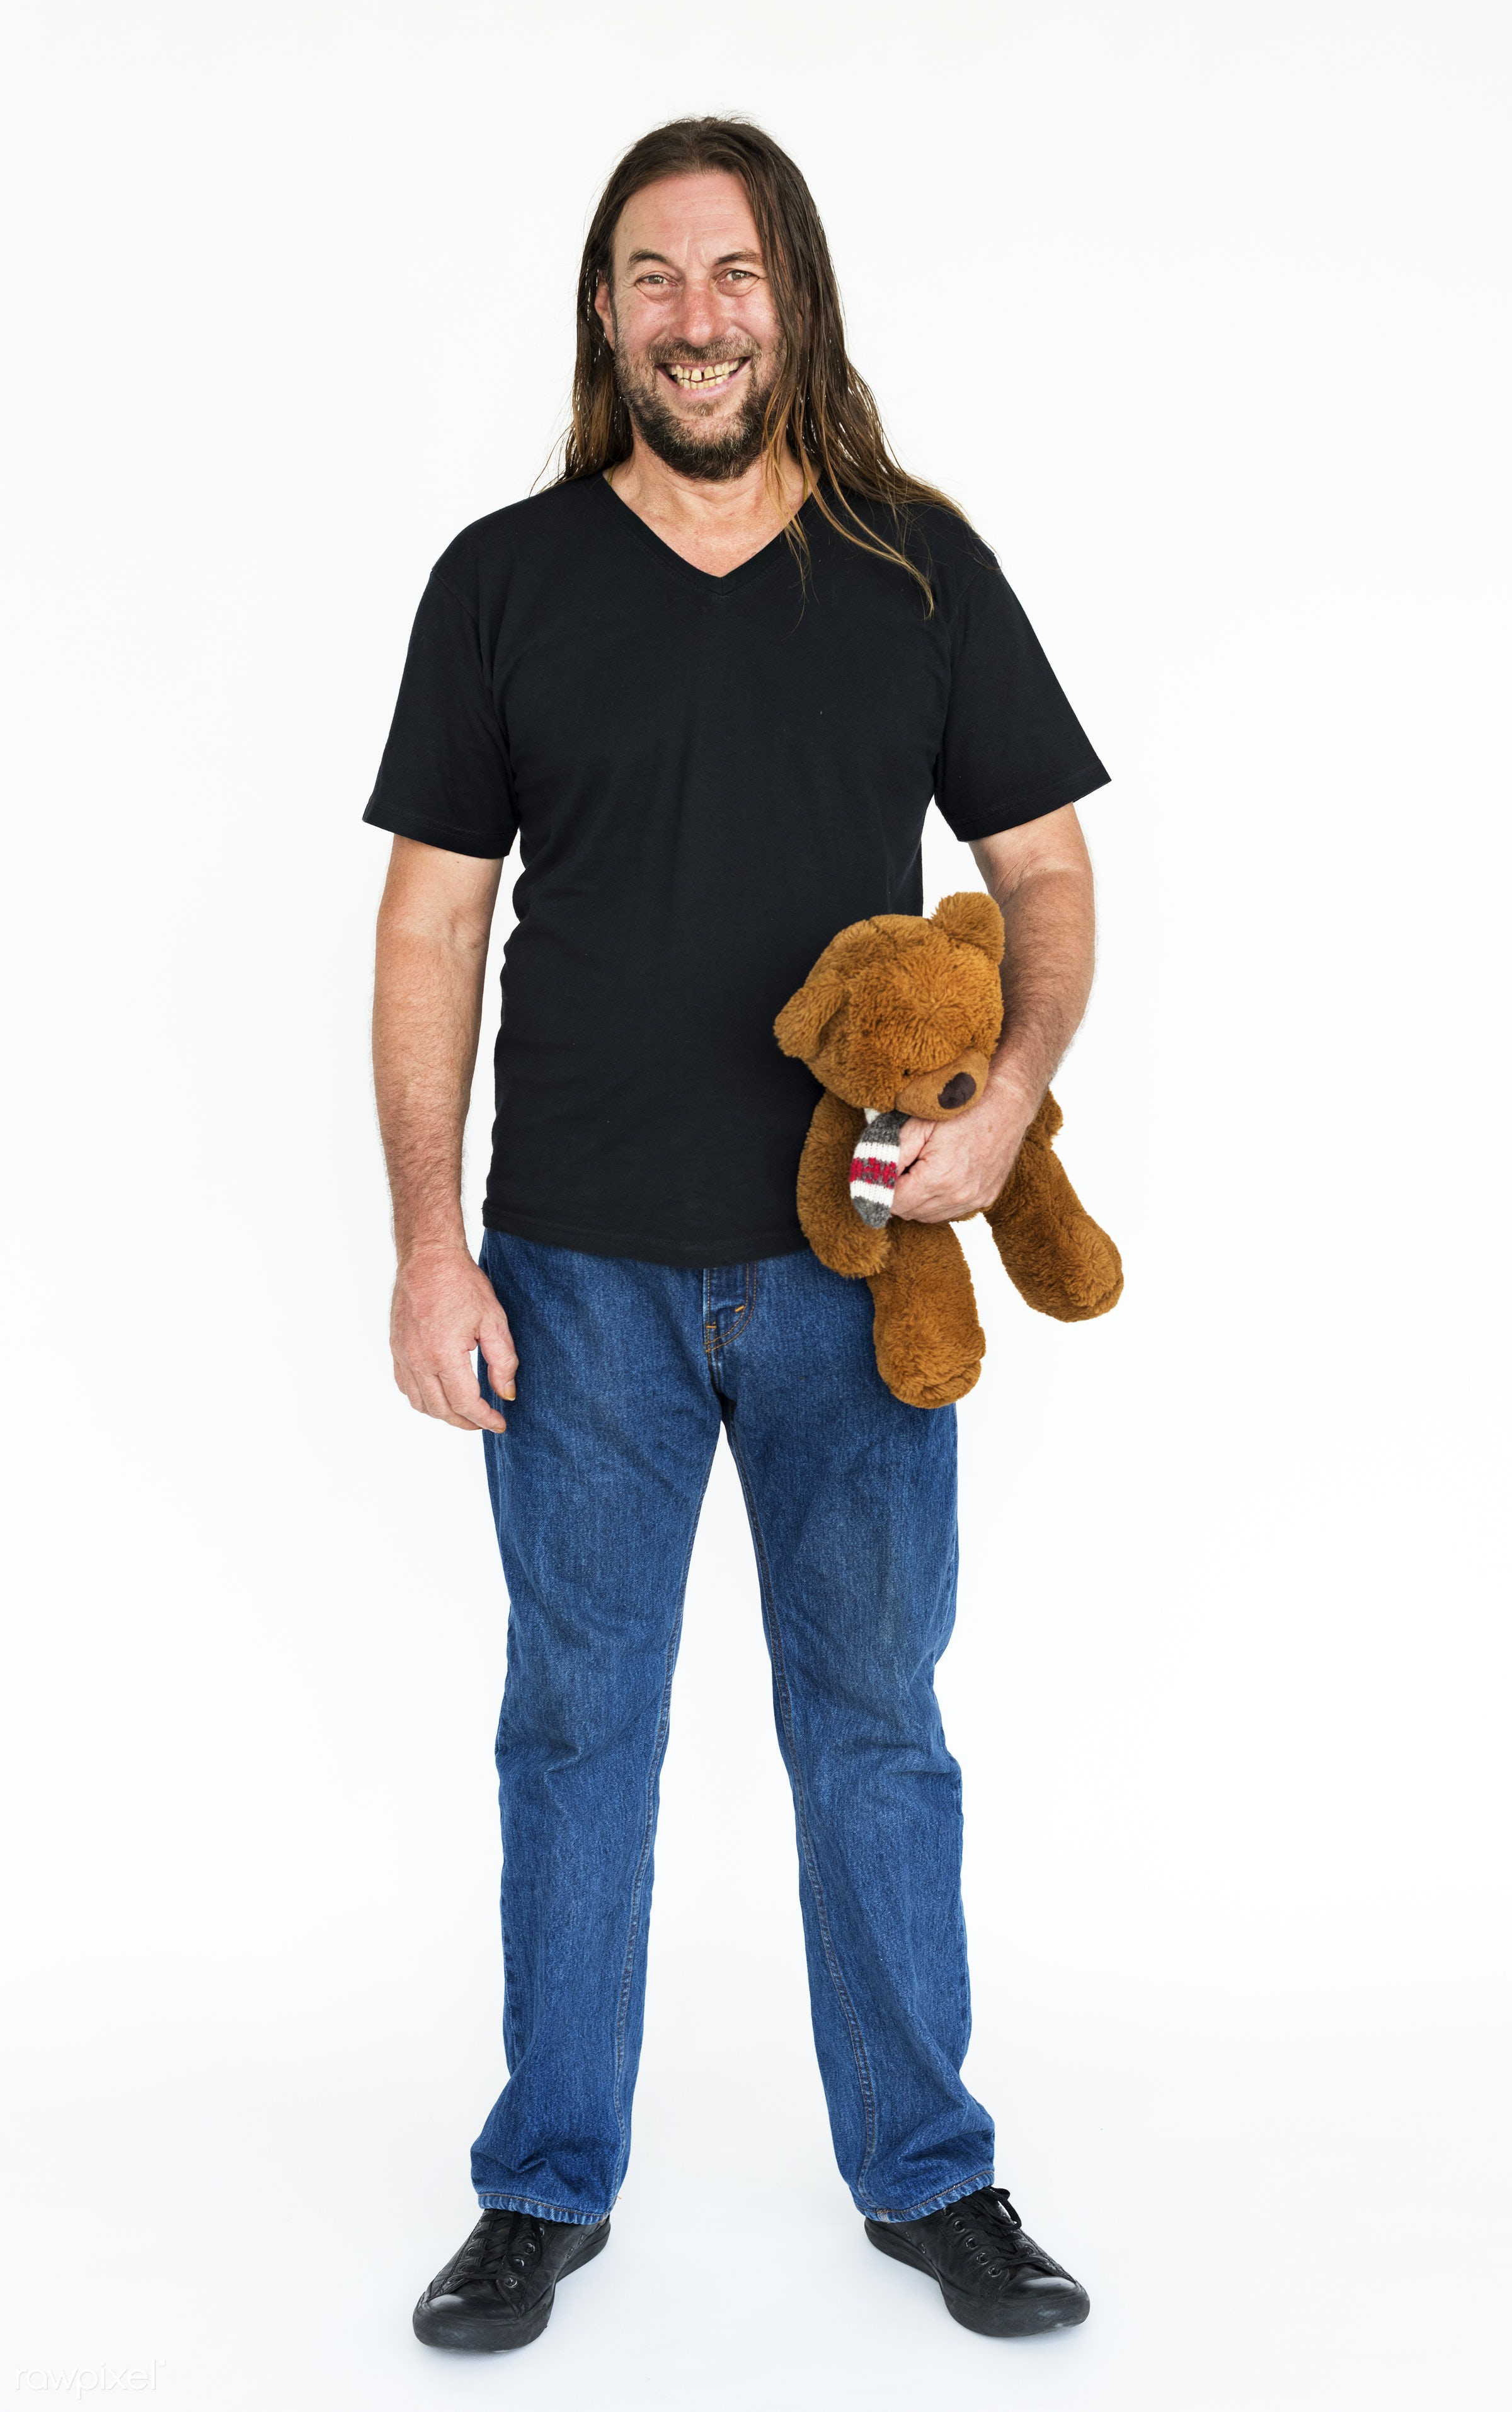 studio, expression, face, person, playful, teddy bear, scruffy, holding, one, people, childish, toy, happy, biker, casual,...